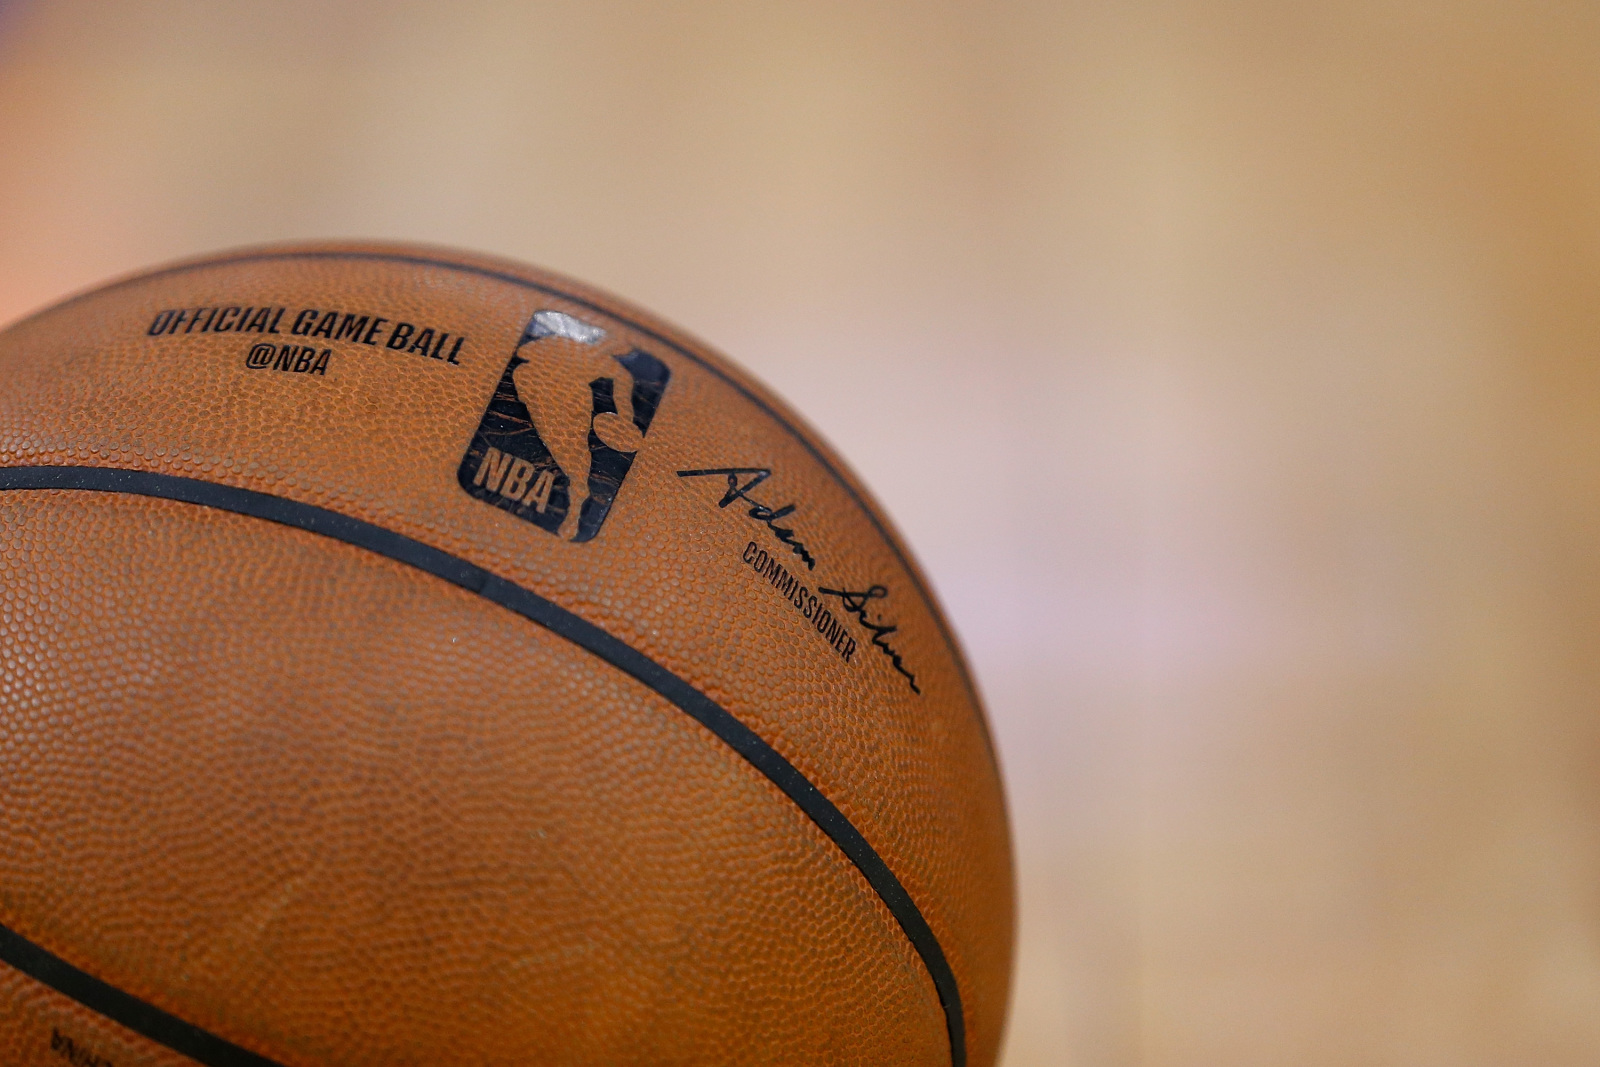 NBA, ESPN working to televise H-O-R-S-E competition